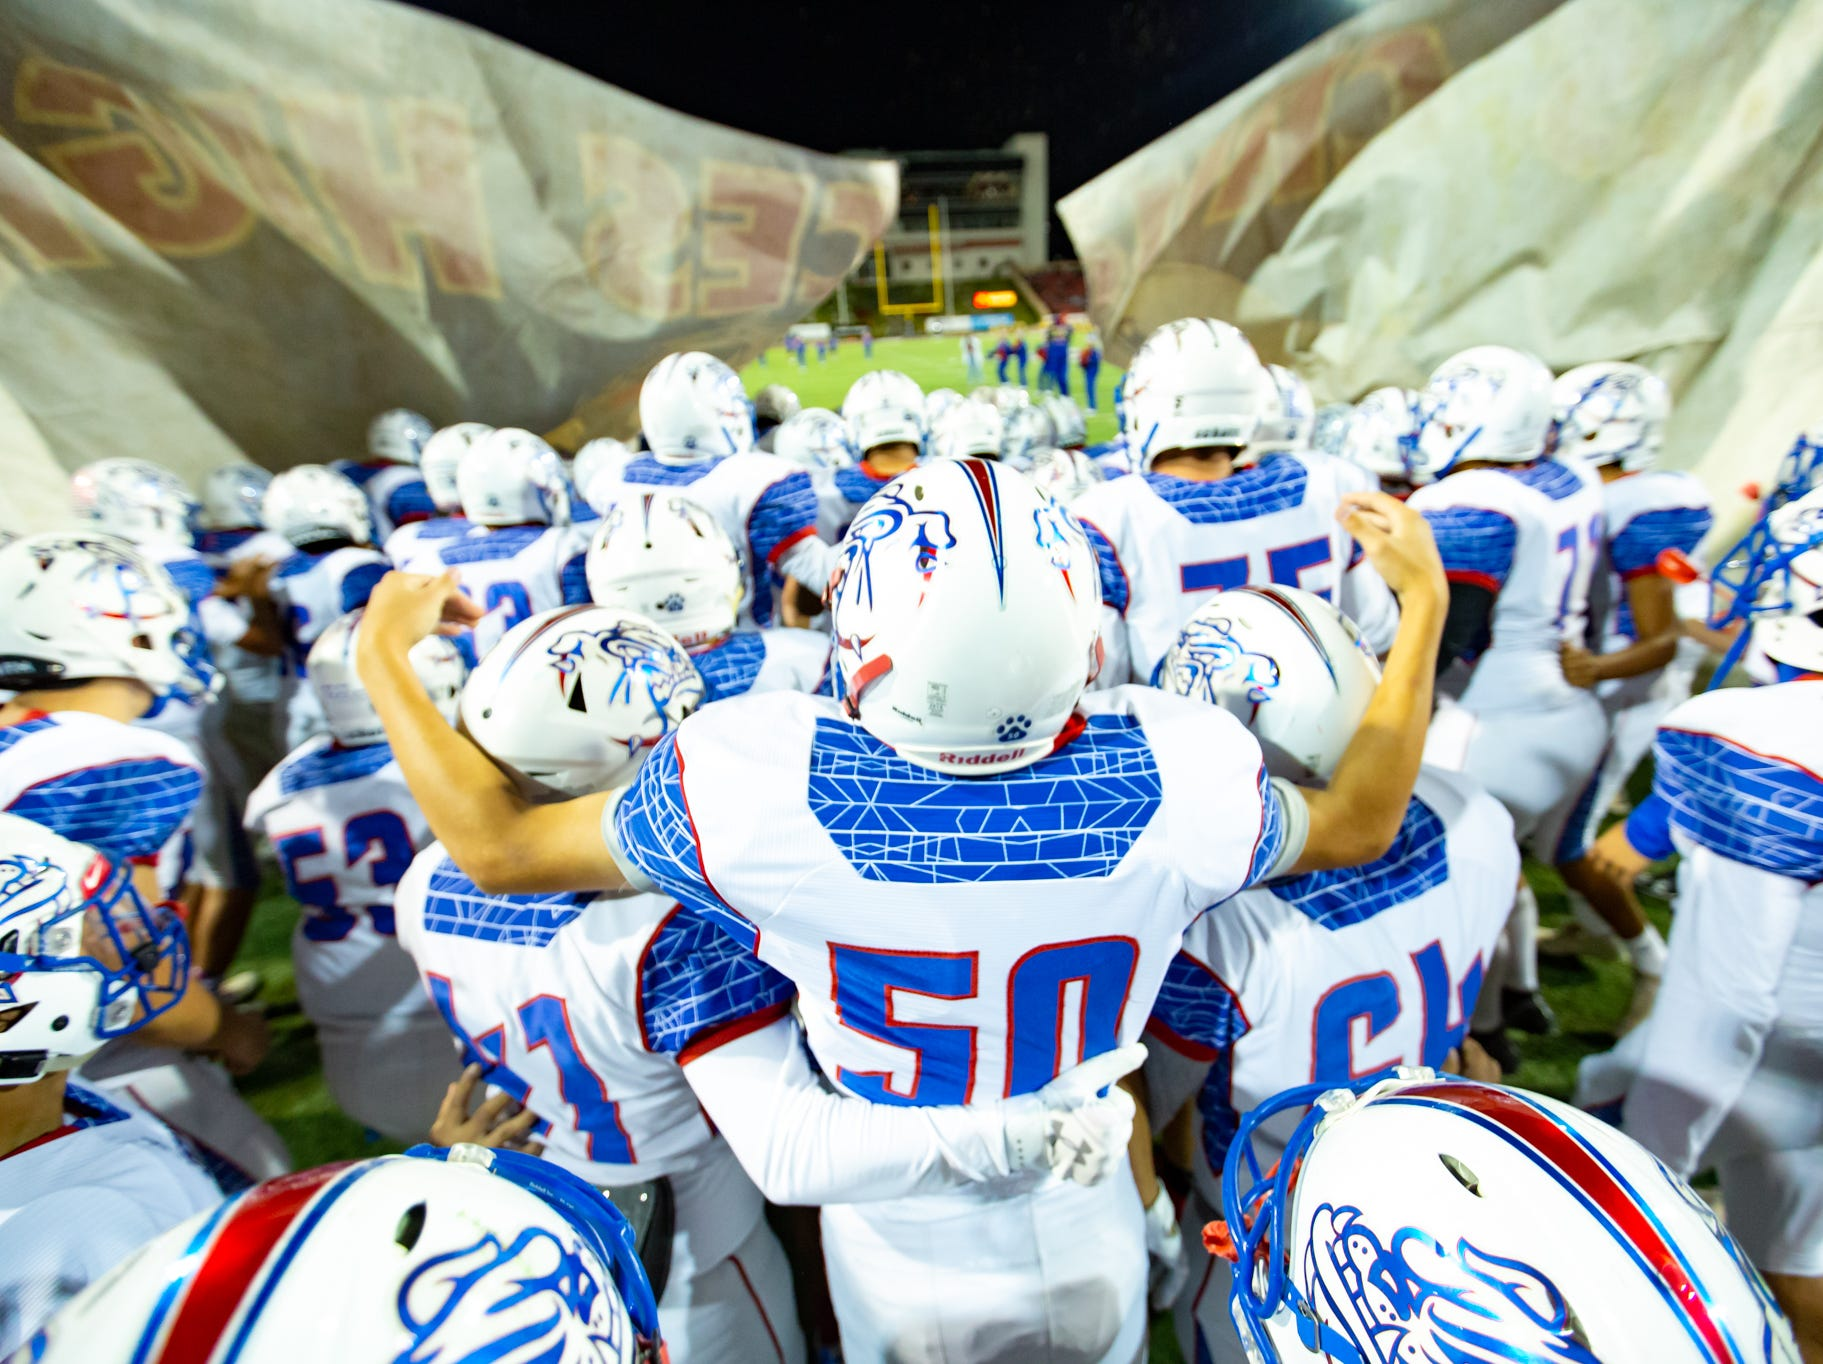 Las Cruces High School football players take the field during the Cruces/Mayfield football game on Friday, Nov. 2, 2018, at Aggie Memorial Stadium.